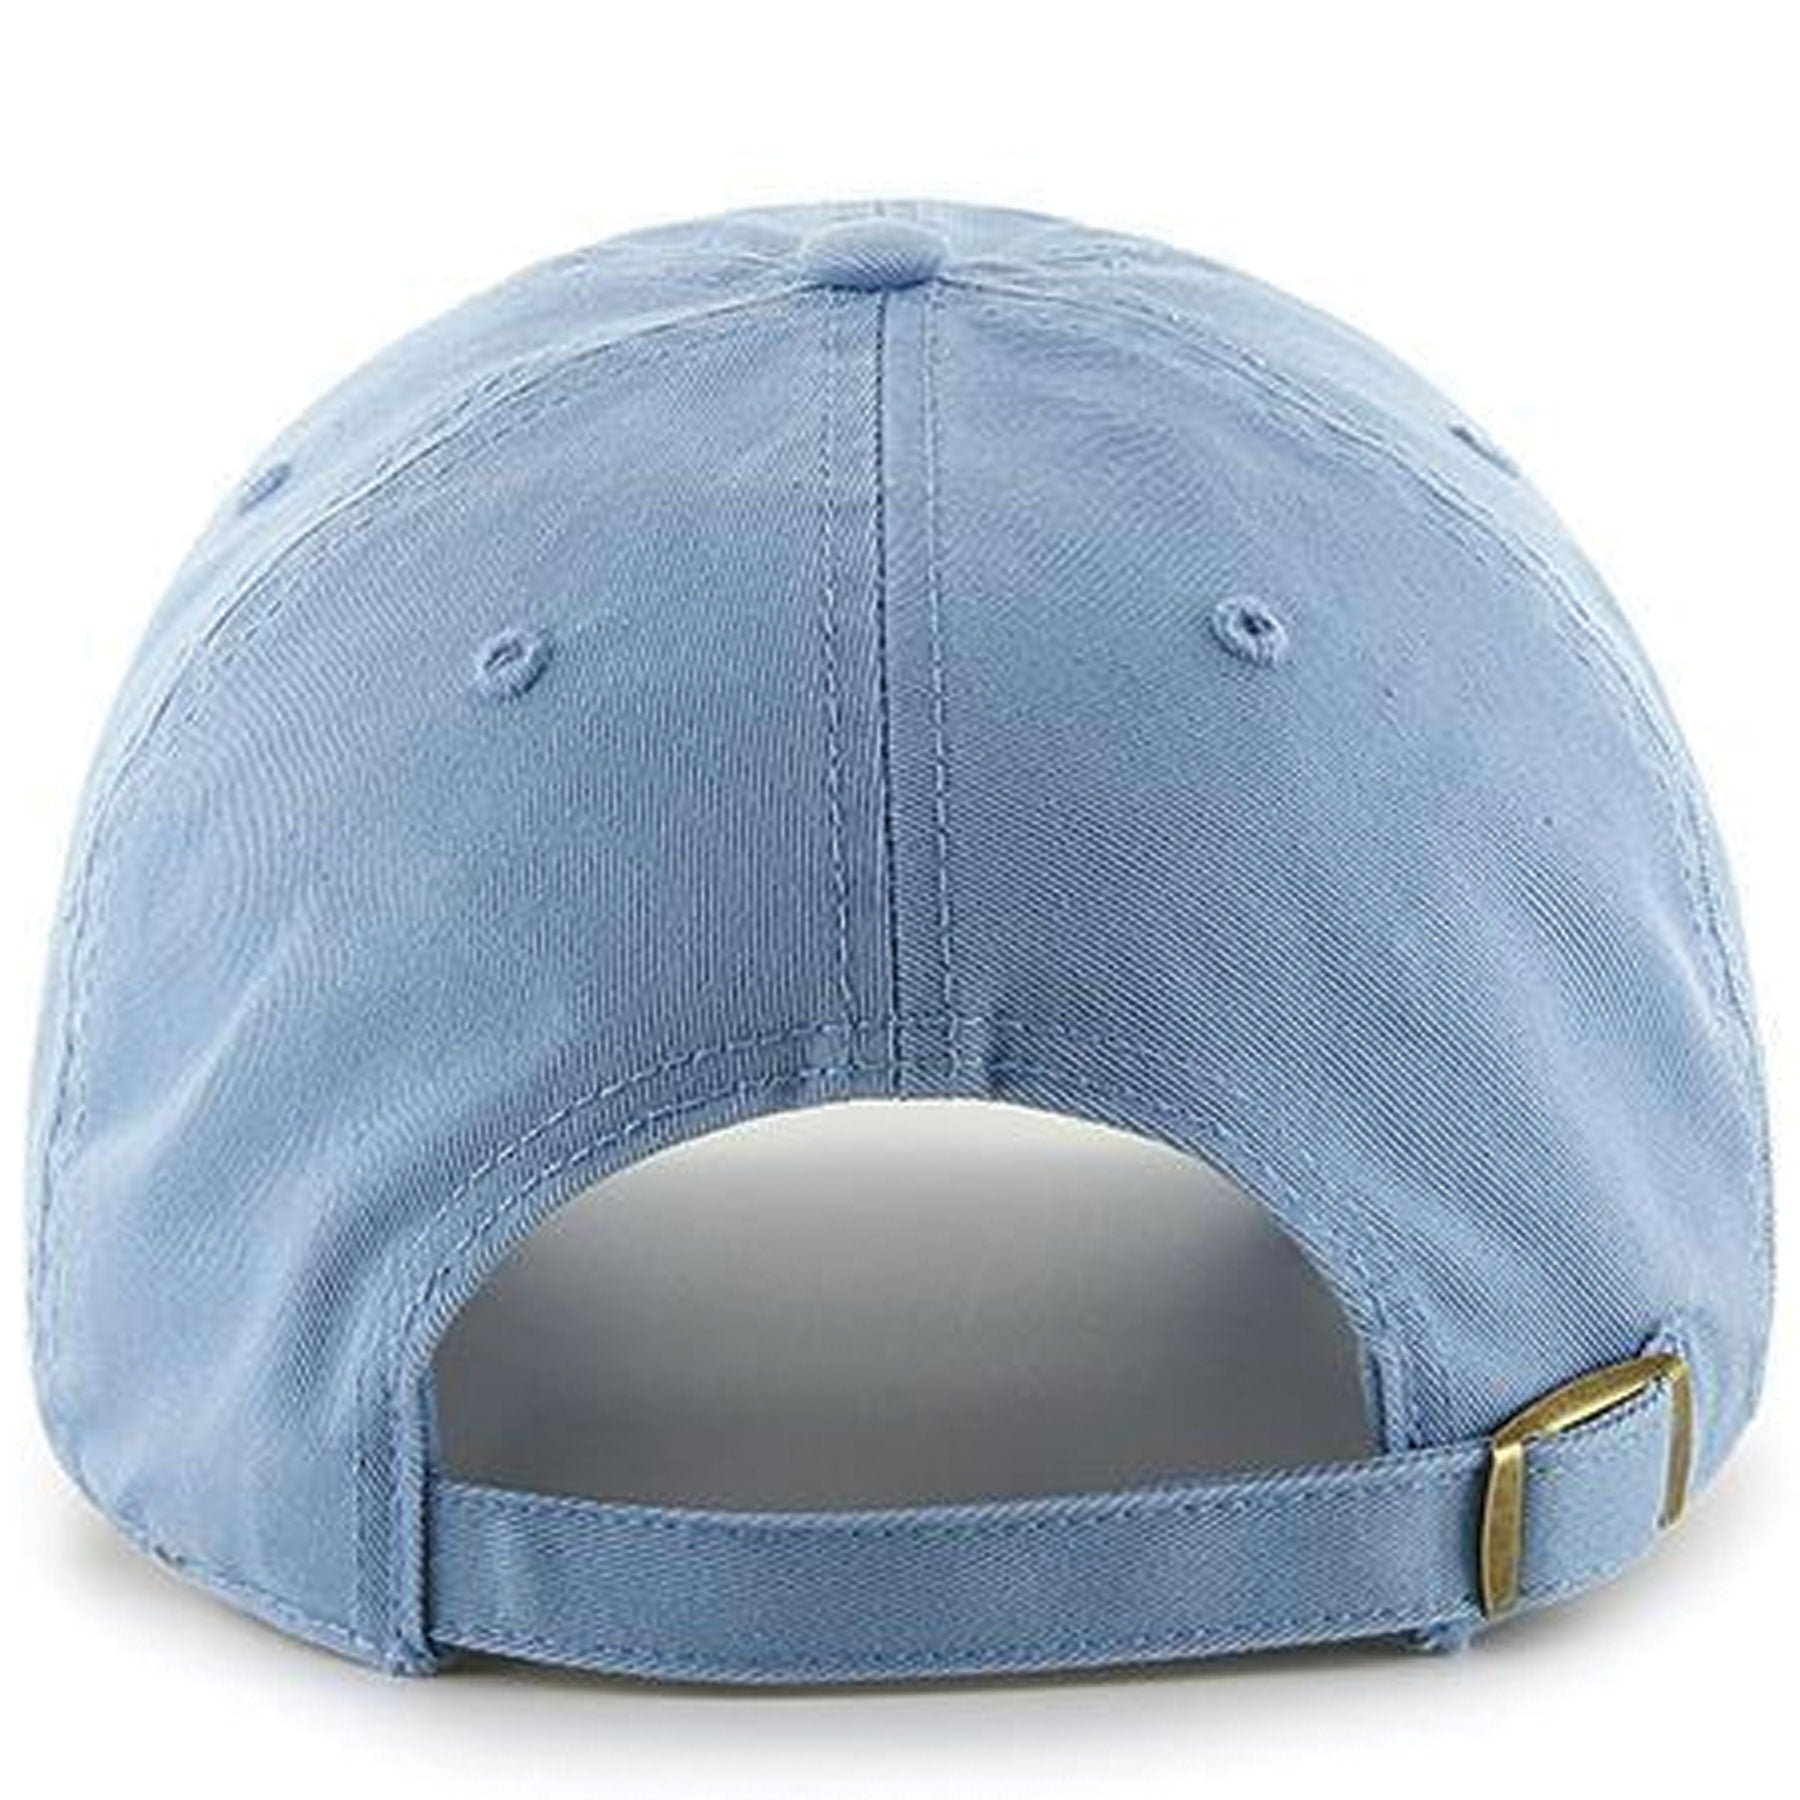 ... the back of the toronto blue jays retro dad hat has a light blue  adjustable strap a7b1311e99b4